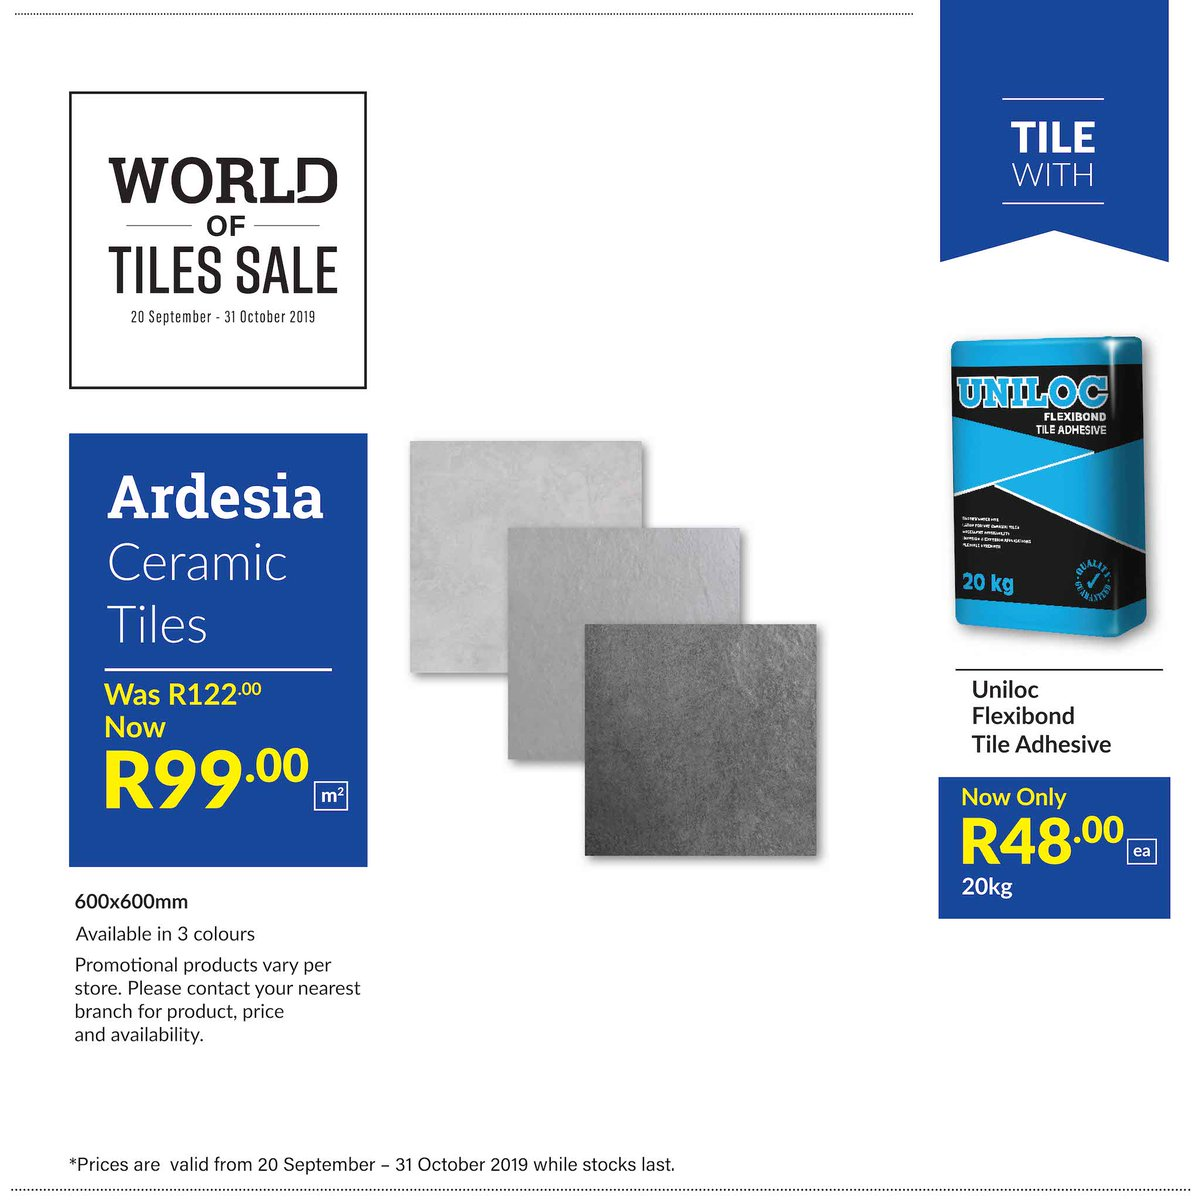 Union Tiles On Twitter Save Bigat The Union Tiles World Of Tiles Sale Get 600x600mm Ardesia Ceramic Tiles Available In 3 Colours For Only R99pm2 Until 31 October 2019 While Stocks Last